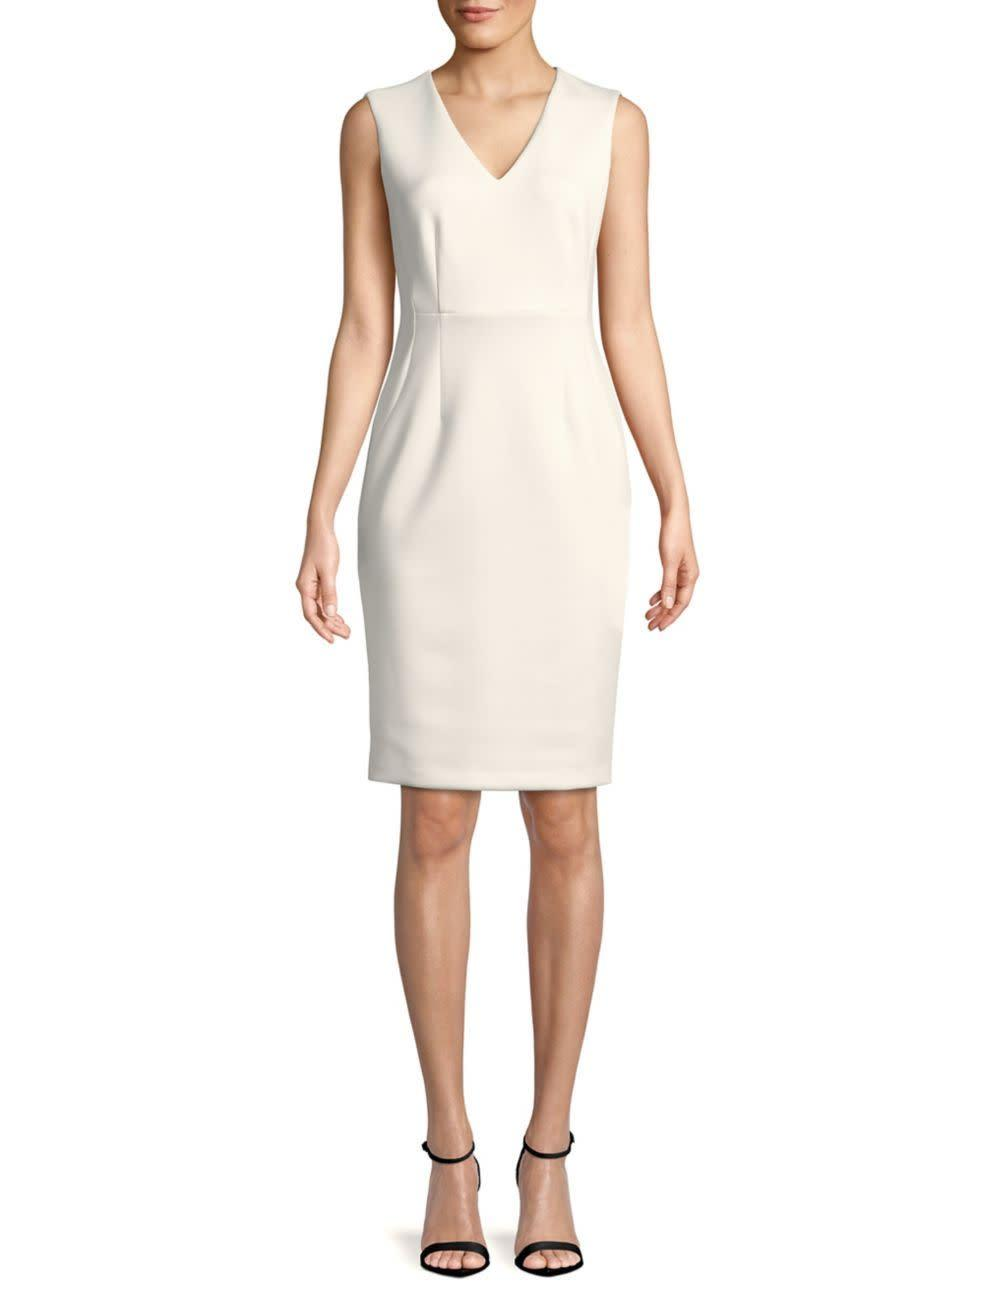 "<strong><a href=""https://www.lordandtaylor.com/calvin-klein-v-neck-sheath-dress/product/0500088389530"" rel=""nofollow noopener"" target=""_blank"" data-ylk=""slk:Calvin Klein V-neck sheath dress"" class=""link rapid-noclick-resp"">Calvin Klein V-neck sheath dress</a>, $49.99</strong>"